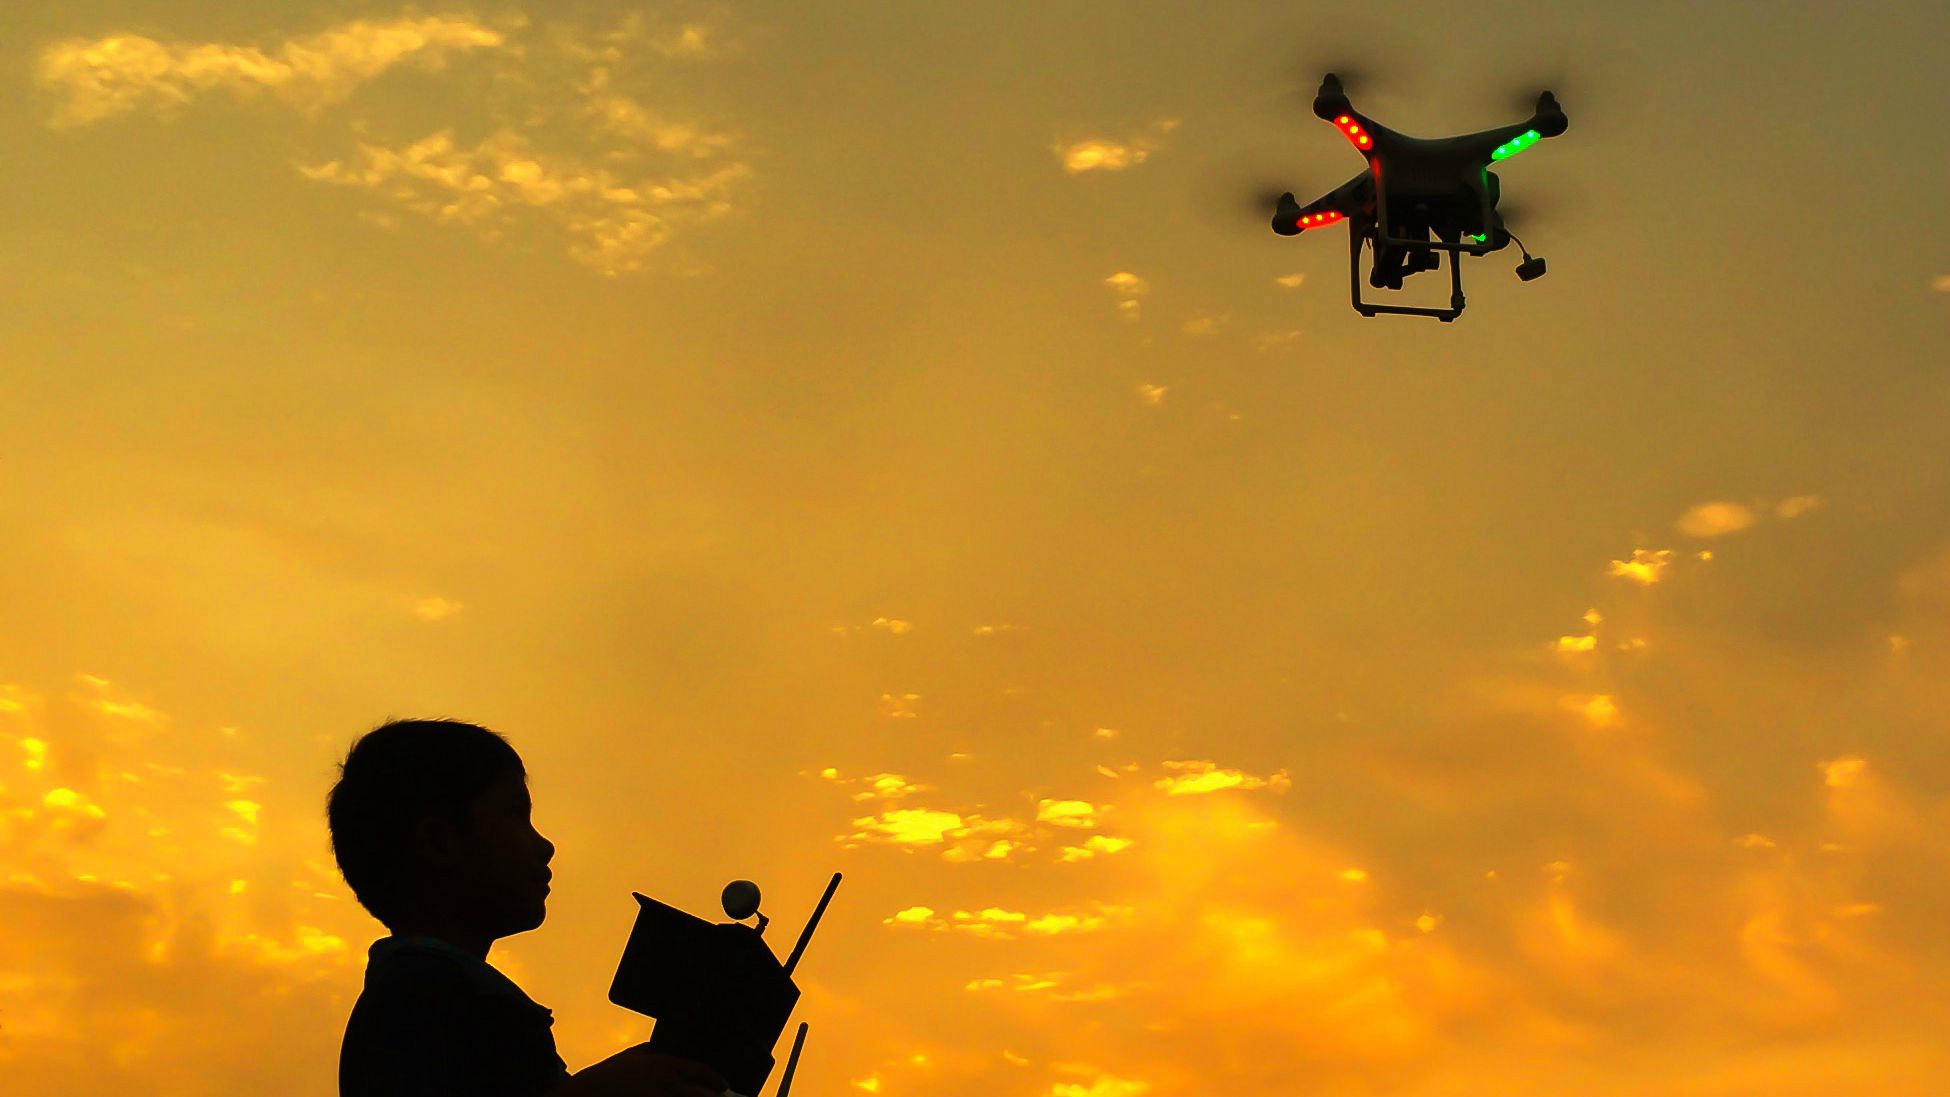 Hindering rescue operations with drones